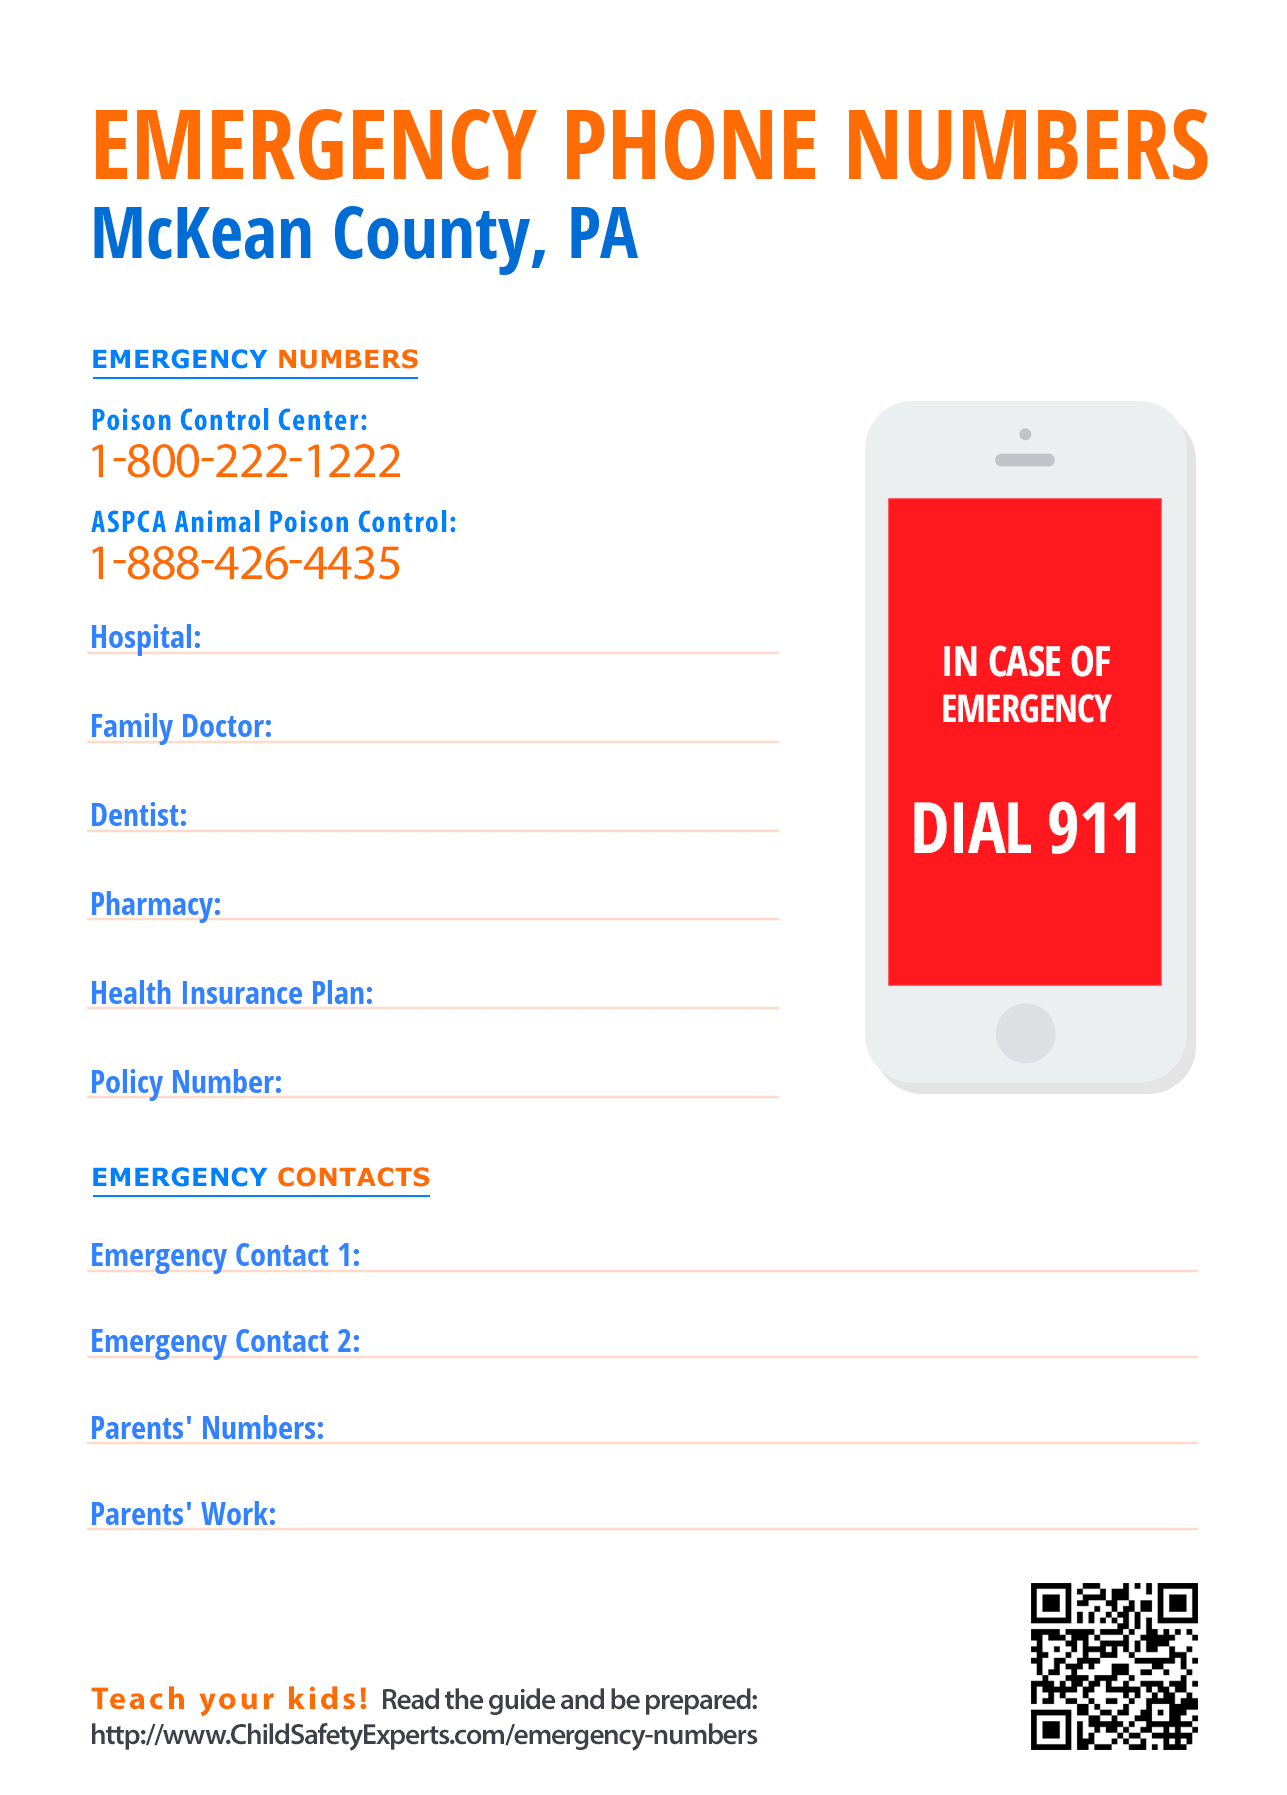 Important emergency phone numbers in McKean County, Pennsylvania